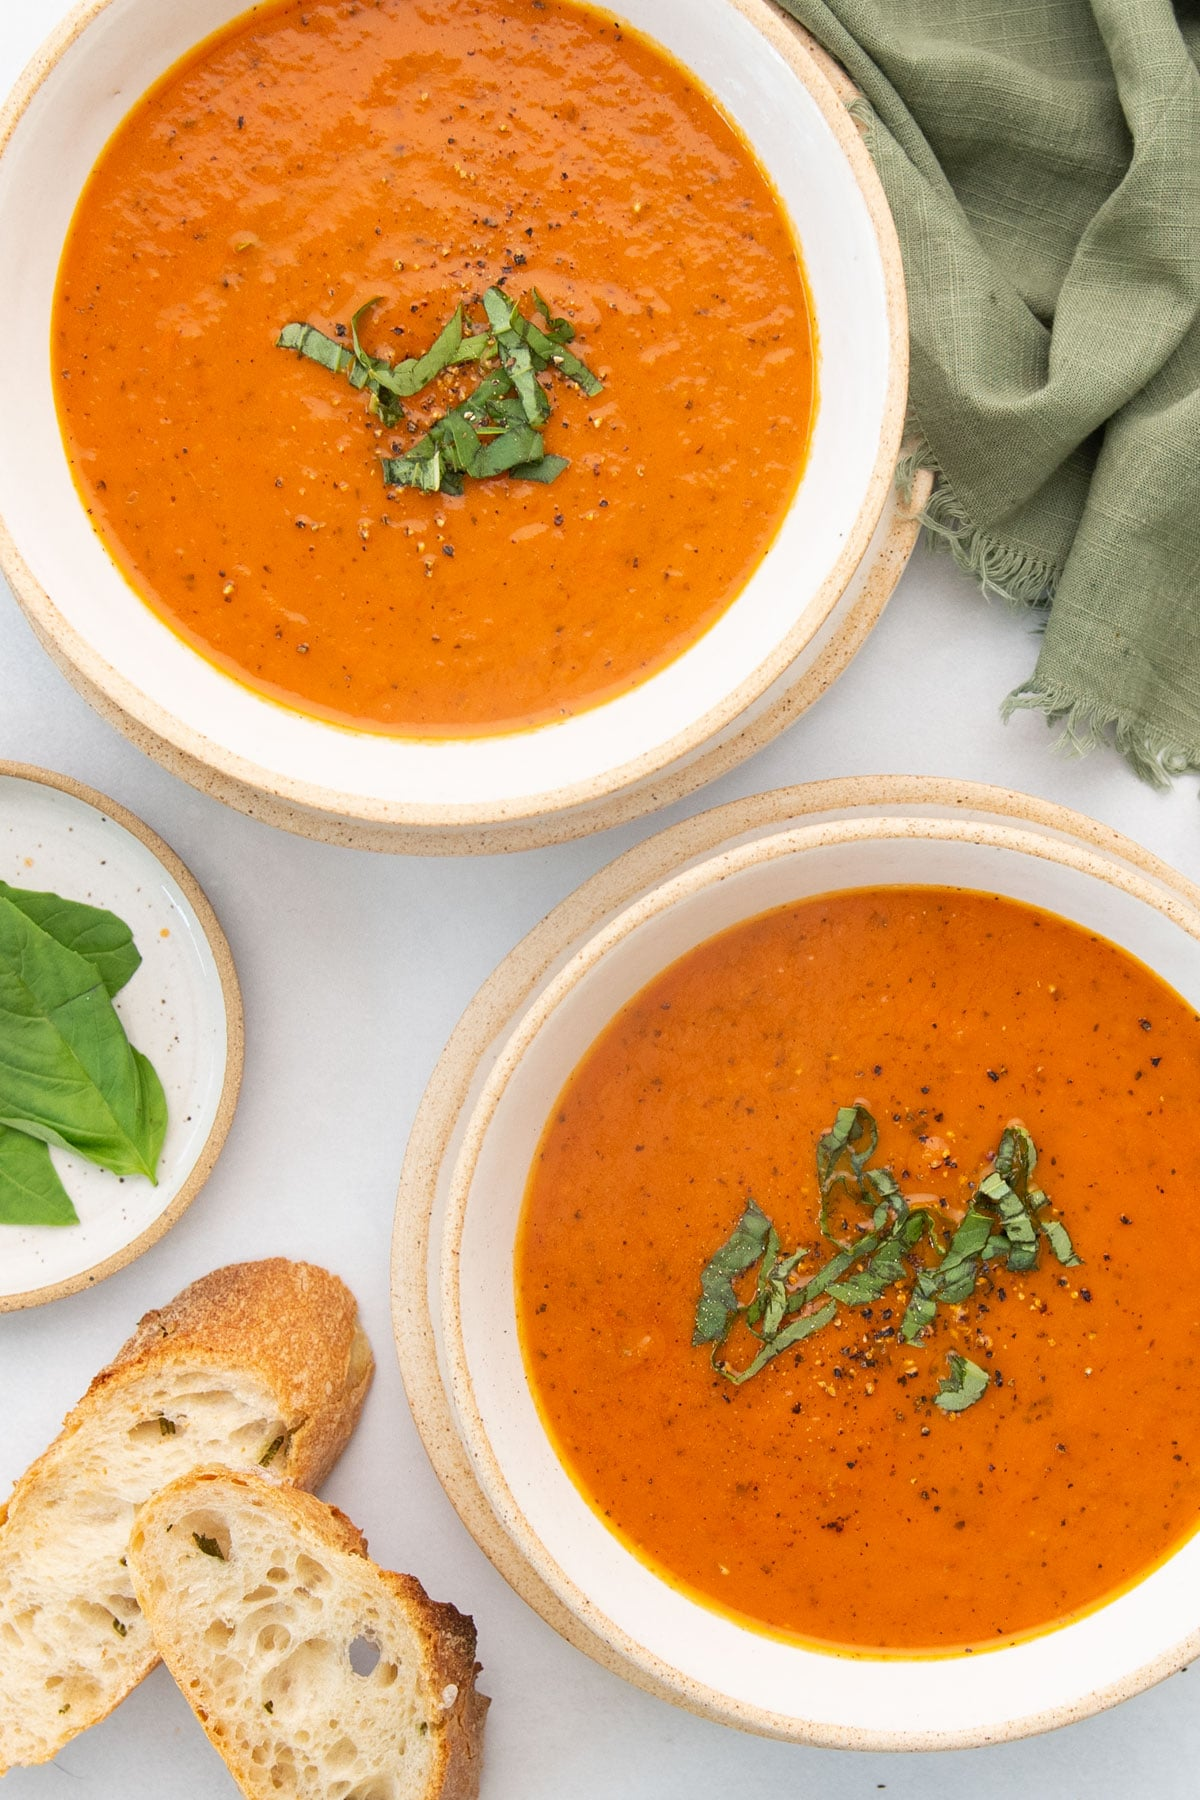 top view two bowls of dairy free tomato soup with basil and slices of bread on the side